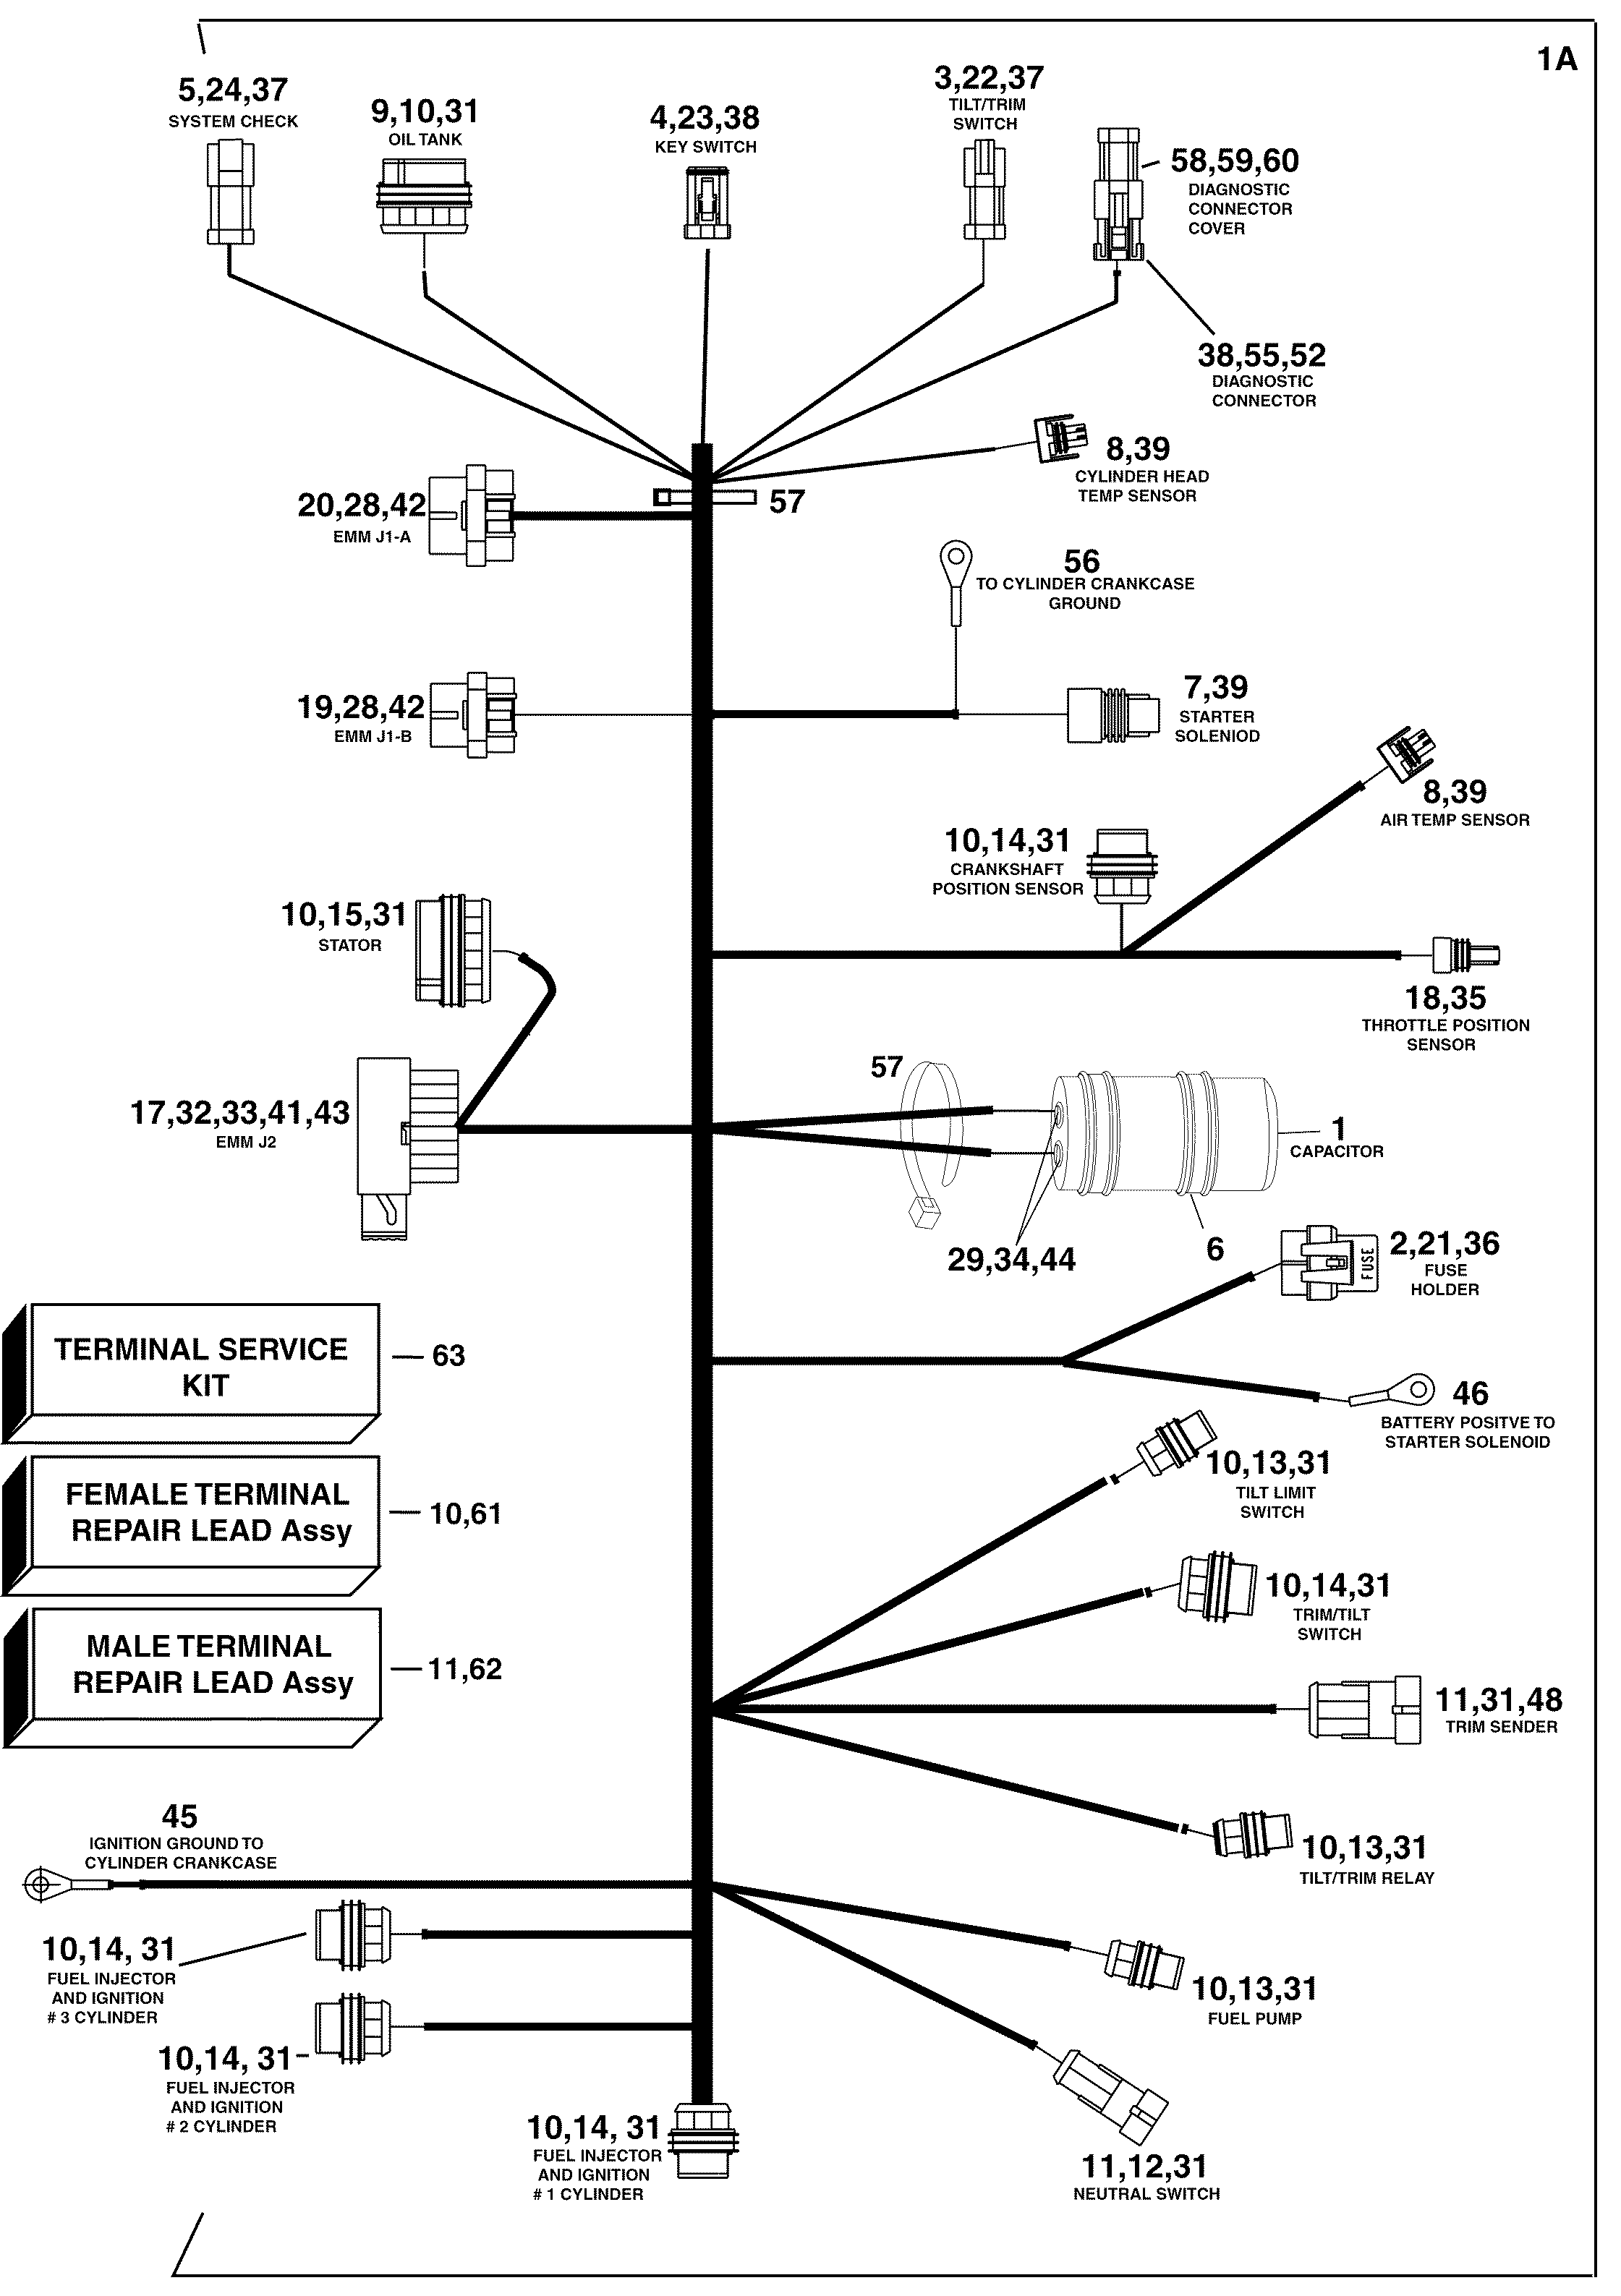 emgo ignition switch wiring diagram emgo image similiar 2006 mercury 90 hp wiring diagram keywords on emgo ignition switch wiring diagram